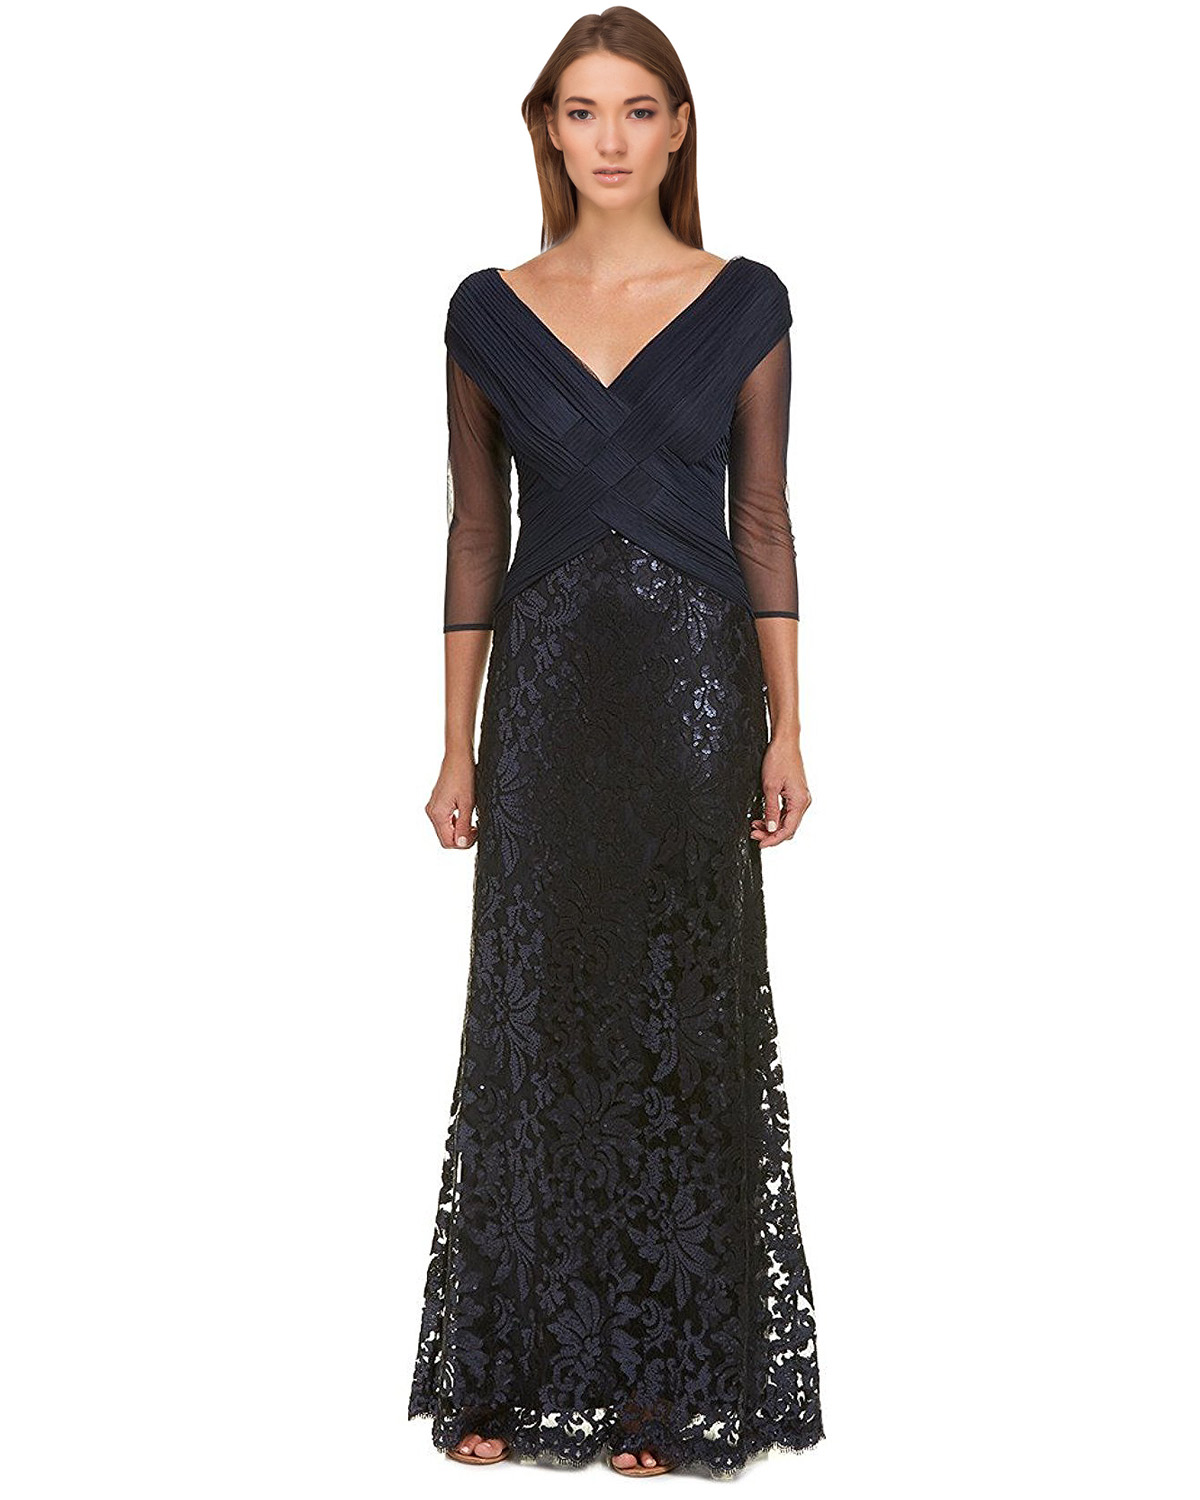 Tadashi Shoji Petite Navy Sequined Woven 3/4 Sleeve Evening Gown ...